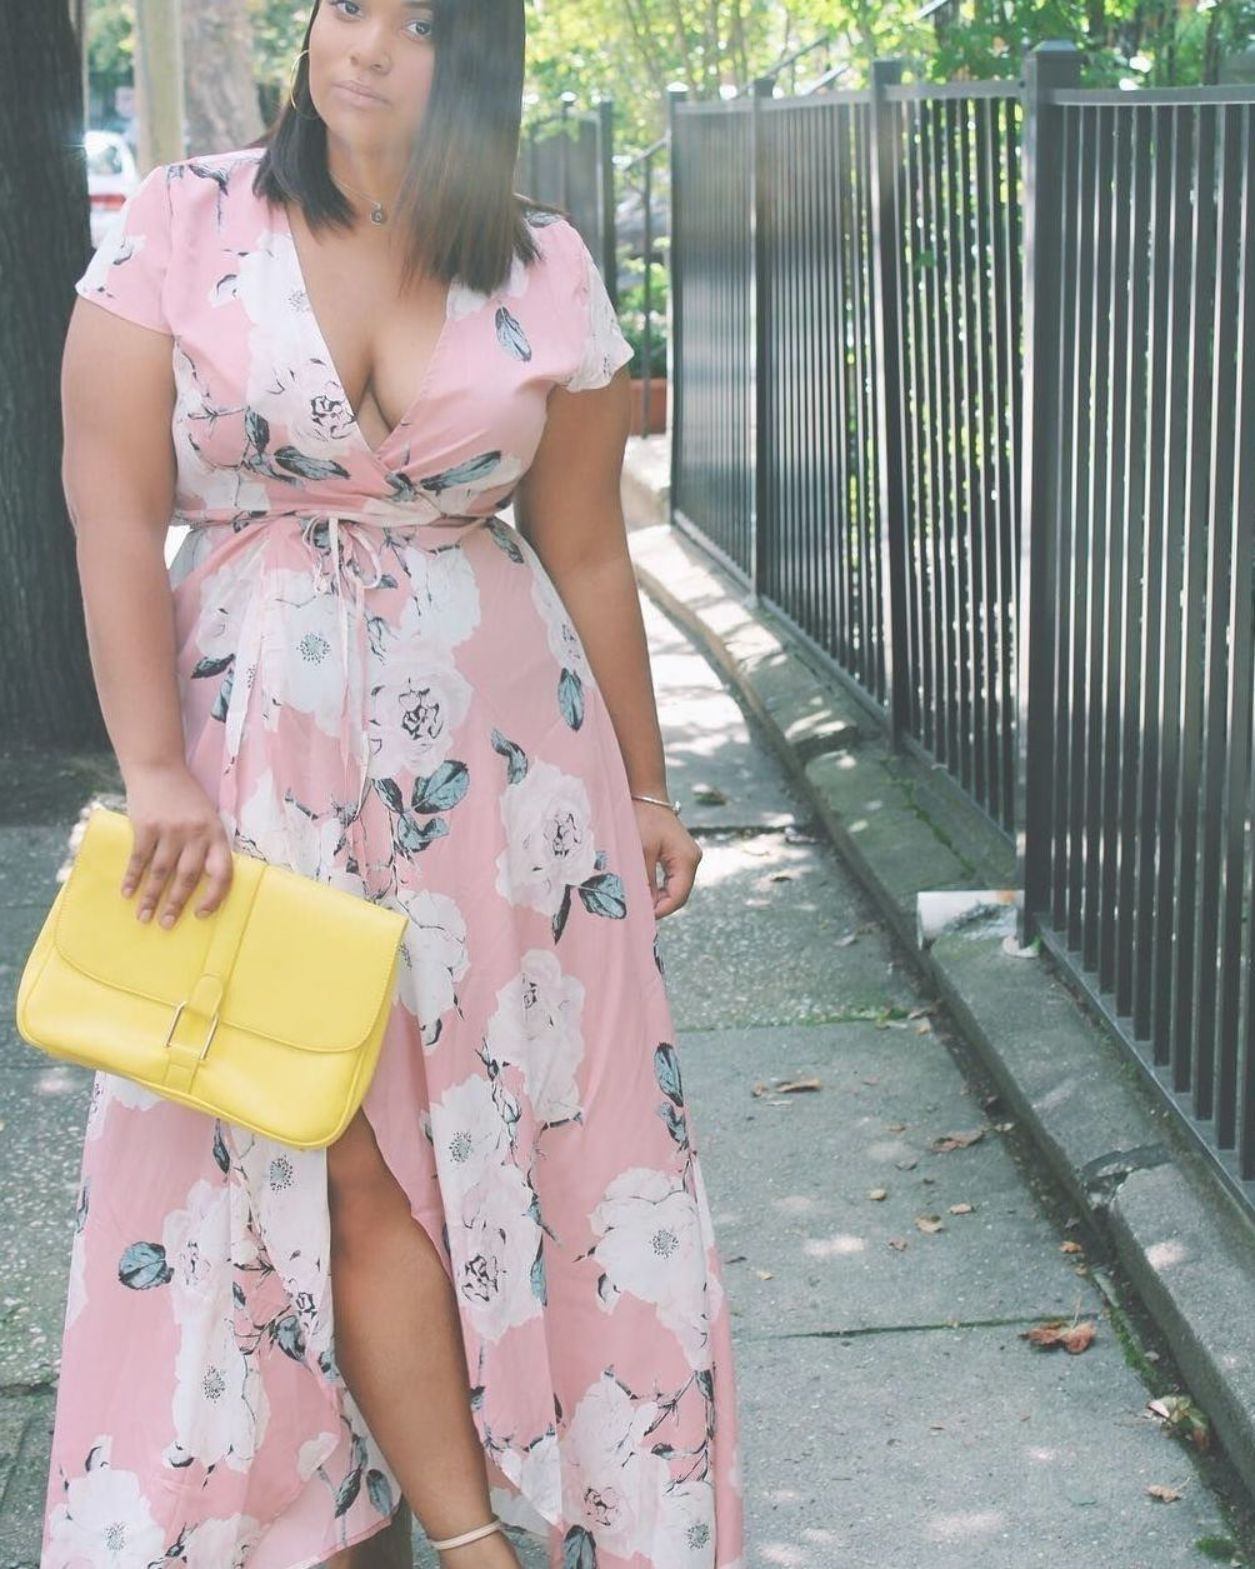 Plus Size Outfits For A Wedding Guest 50 Best Outfits Plus Size Outfits Plus Size Wedding Guest Dresses Plus Size Fashion For Women [ 1569 x 1255 Pixel ]